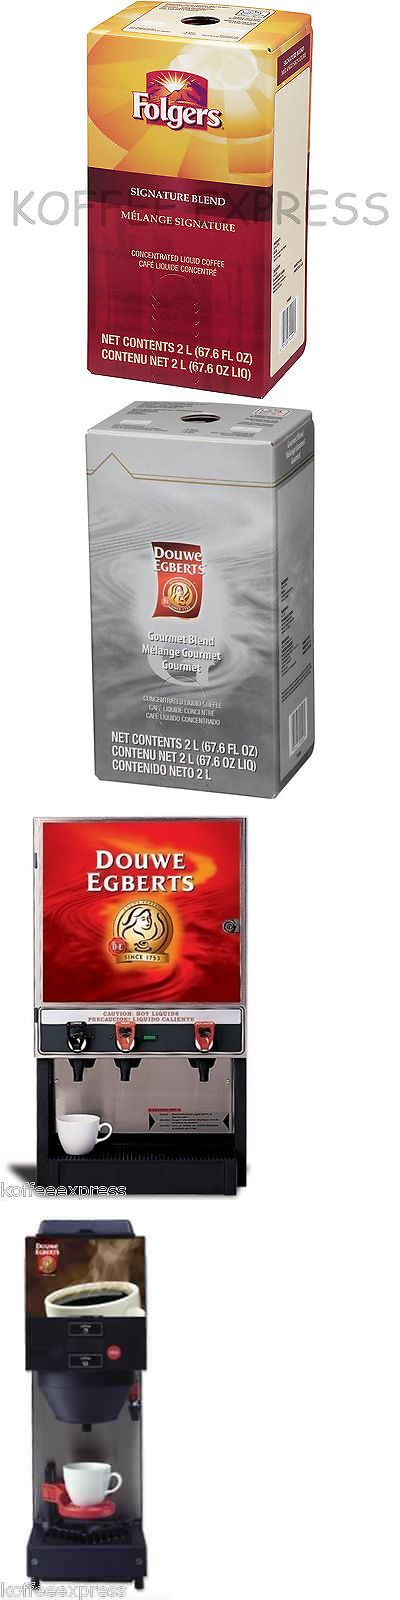 Other Coffee 14309: Folgers Liquid Coffee 2 L Signature Blend (One) - Replaces Douwe Egberts Gourmet -> BUY IT NOW ONLY: $89.99 on eBay!